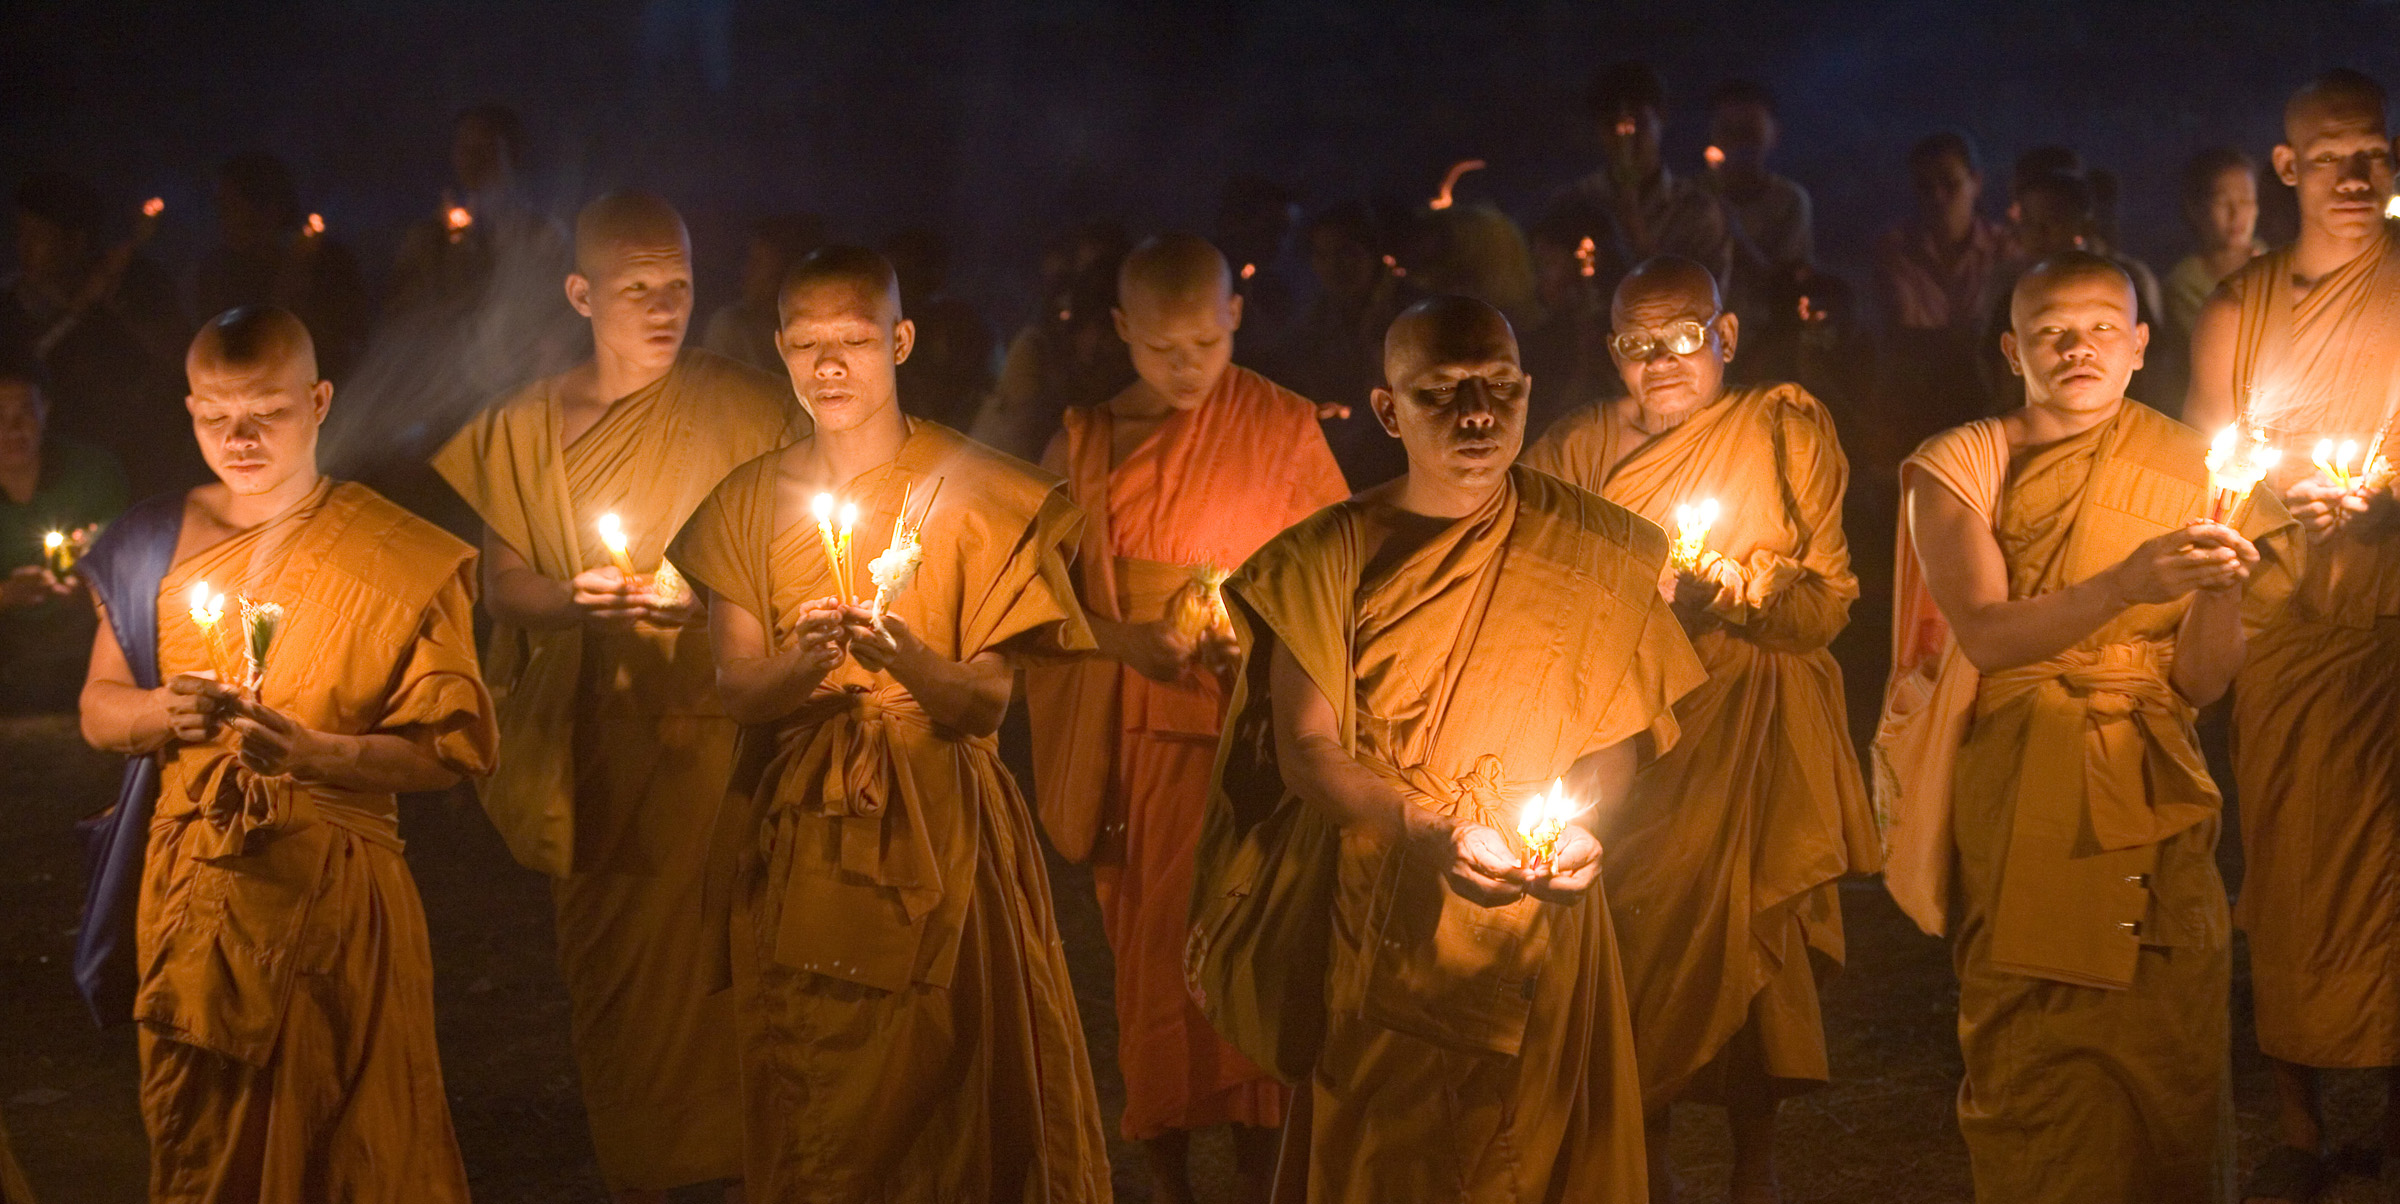 Buddhist monks in Laos - by Wilf Noodermeer on behalf of OMF International